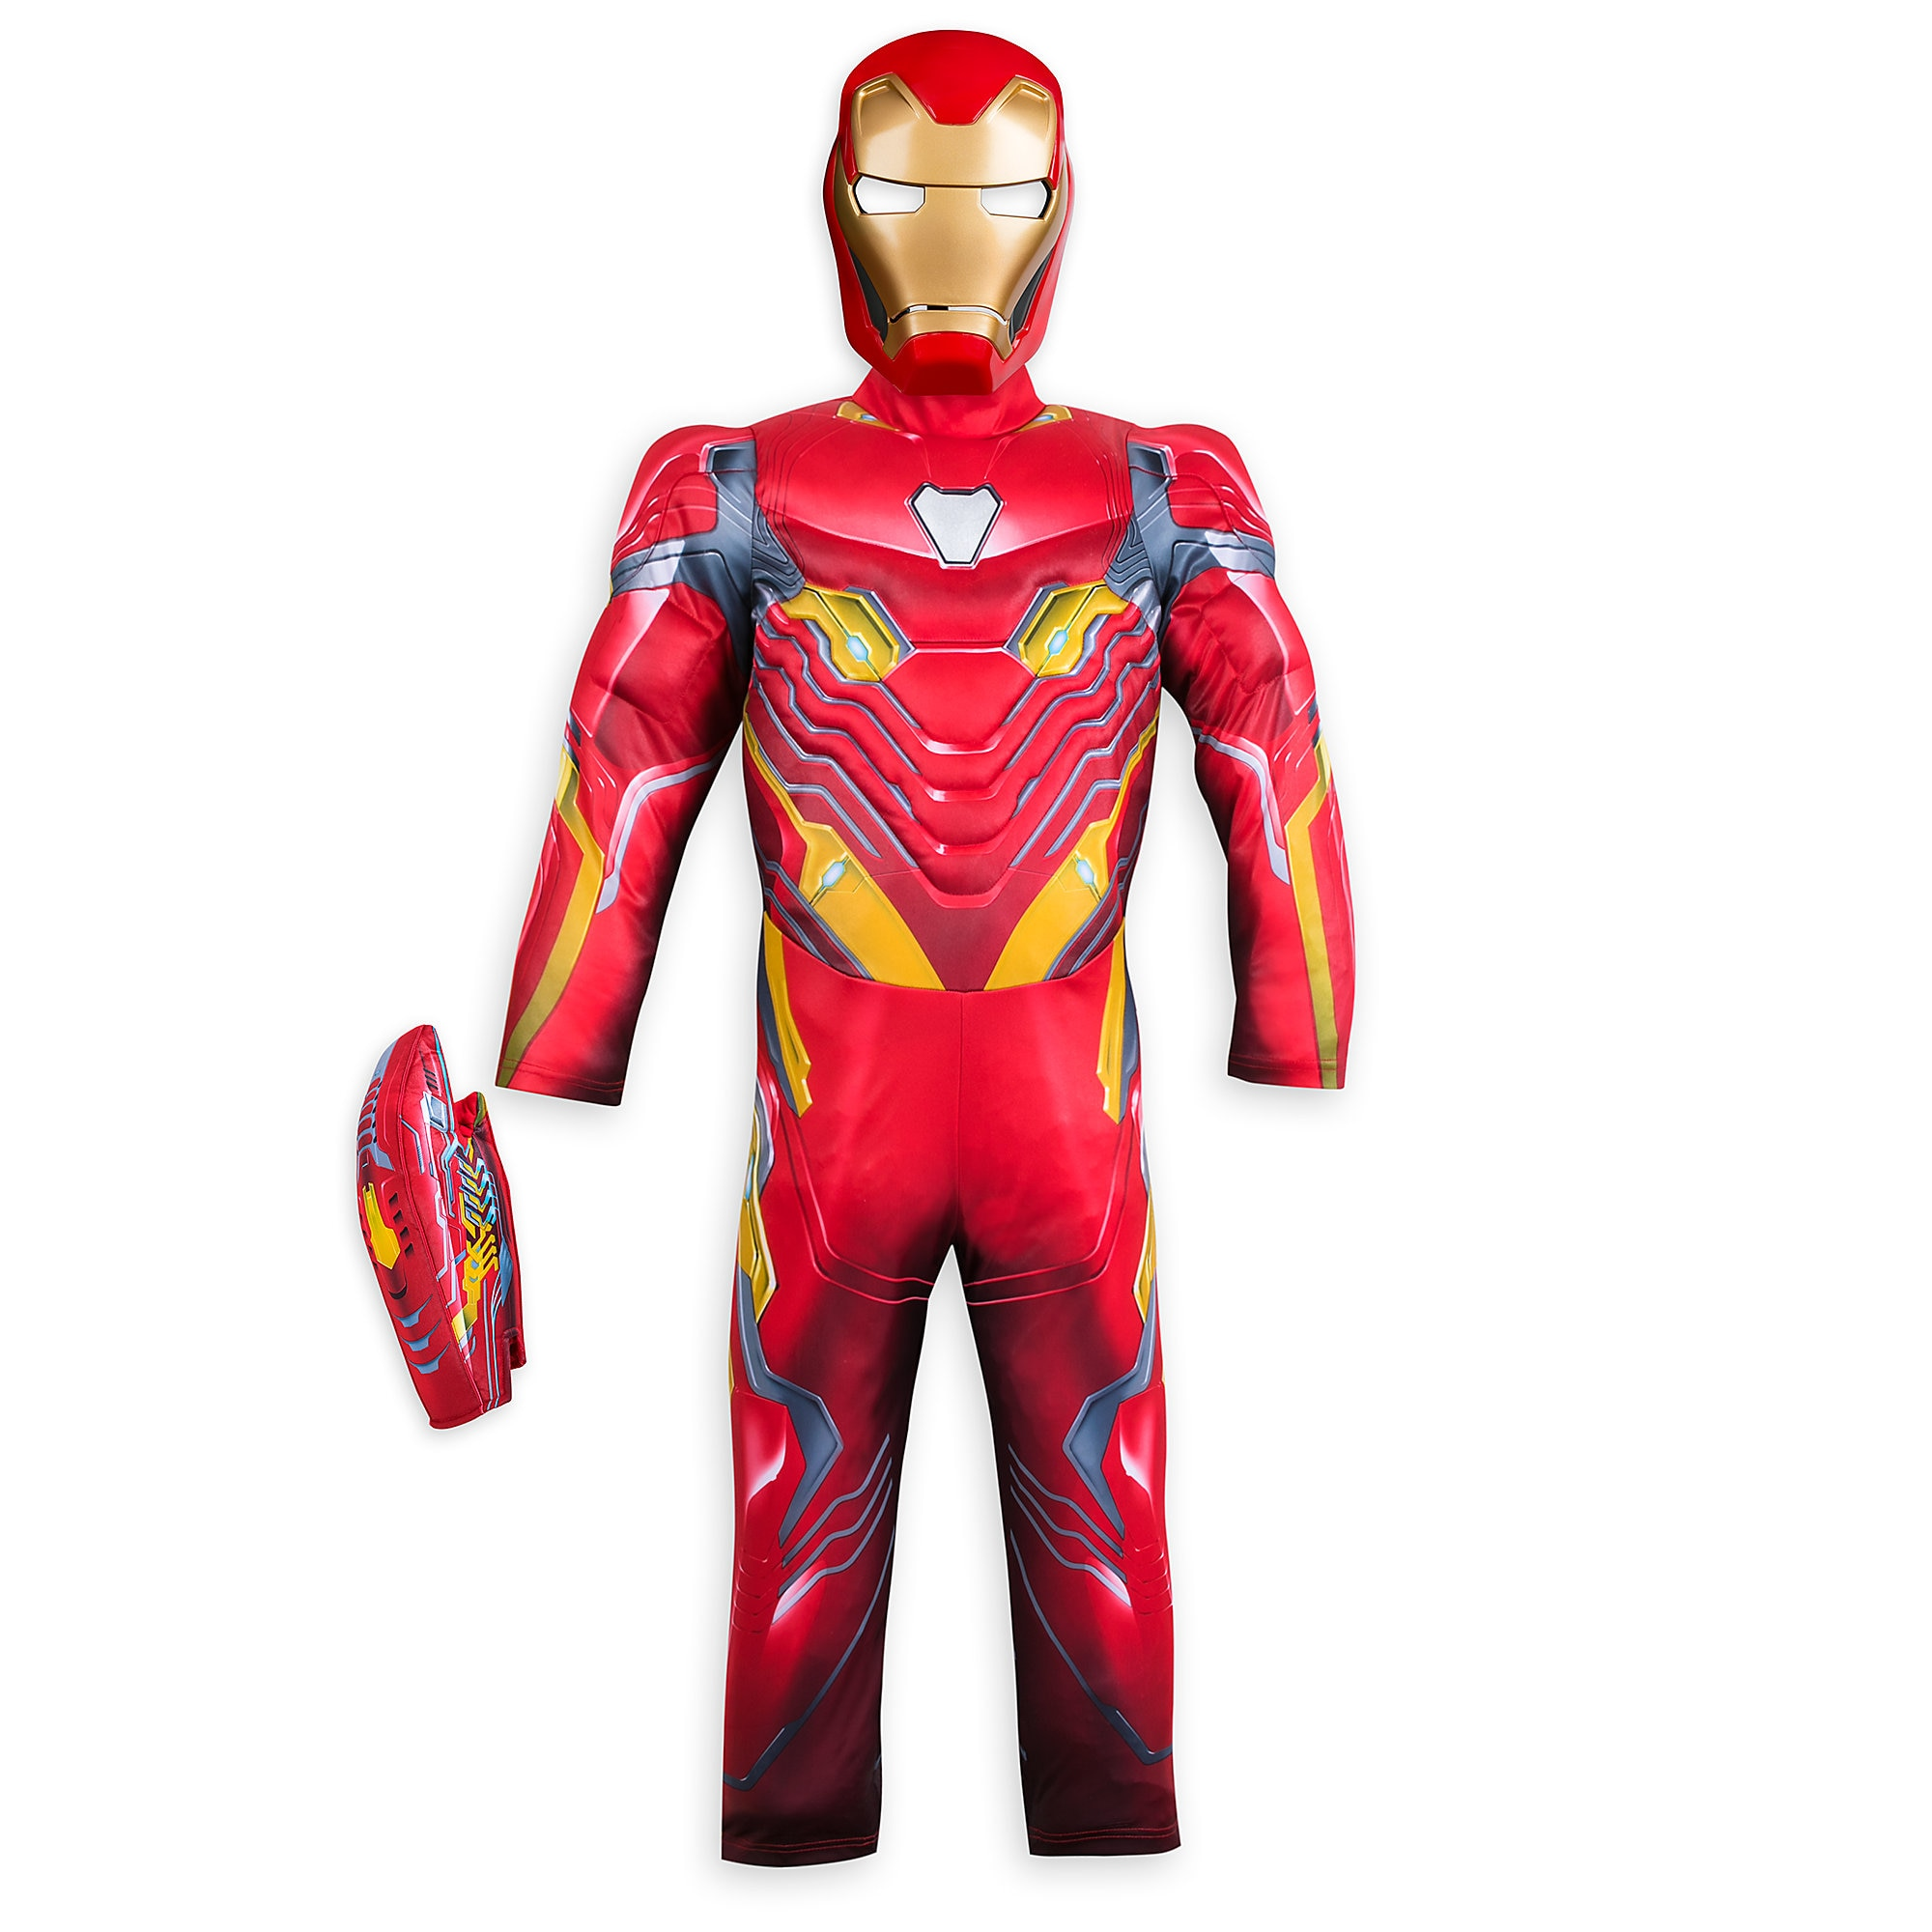 Iron Man Costume for Kids - Marvelu0027s Avengers Infinity War  sc 1 st  shopDisney & Iron Man Costume for Kids - Marvelu0027s Avengers: Infinity War | shopDisney